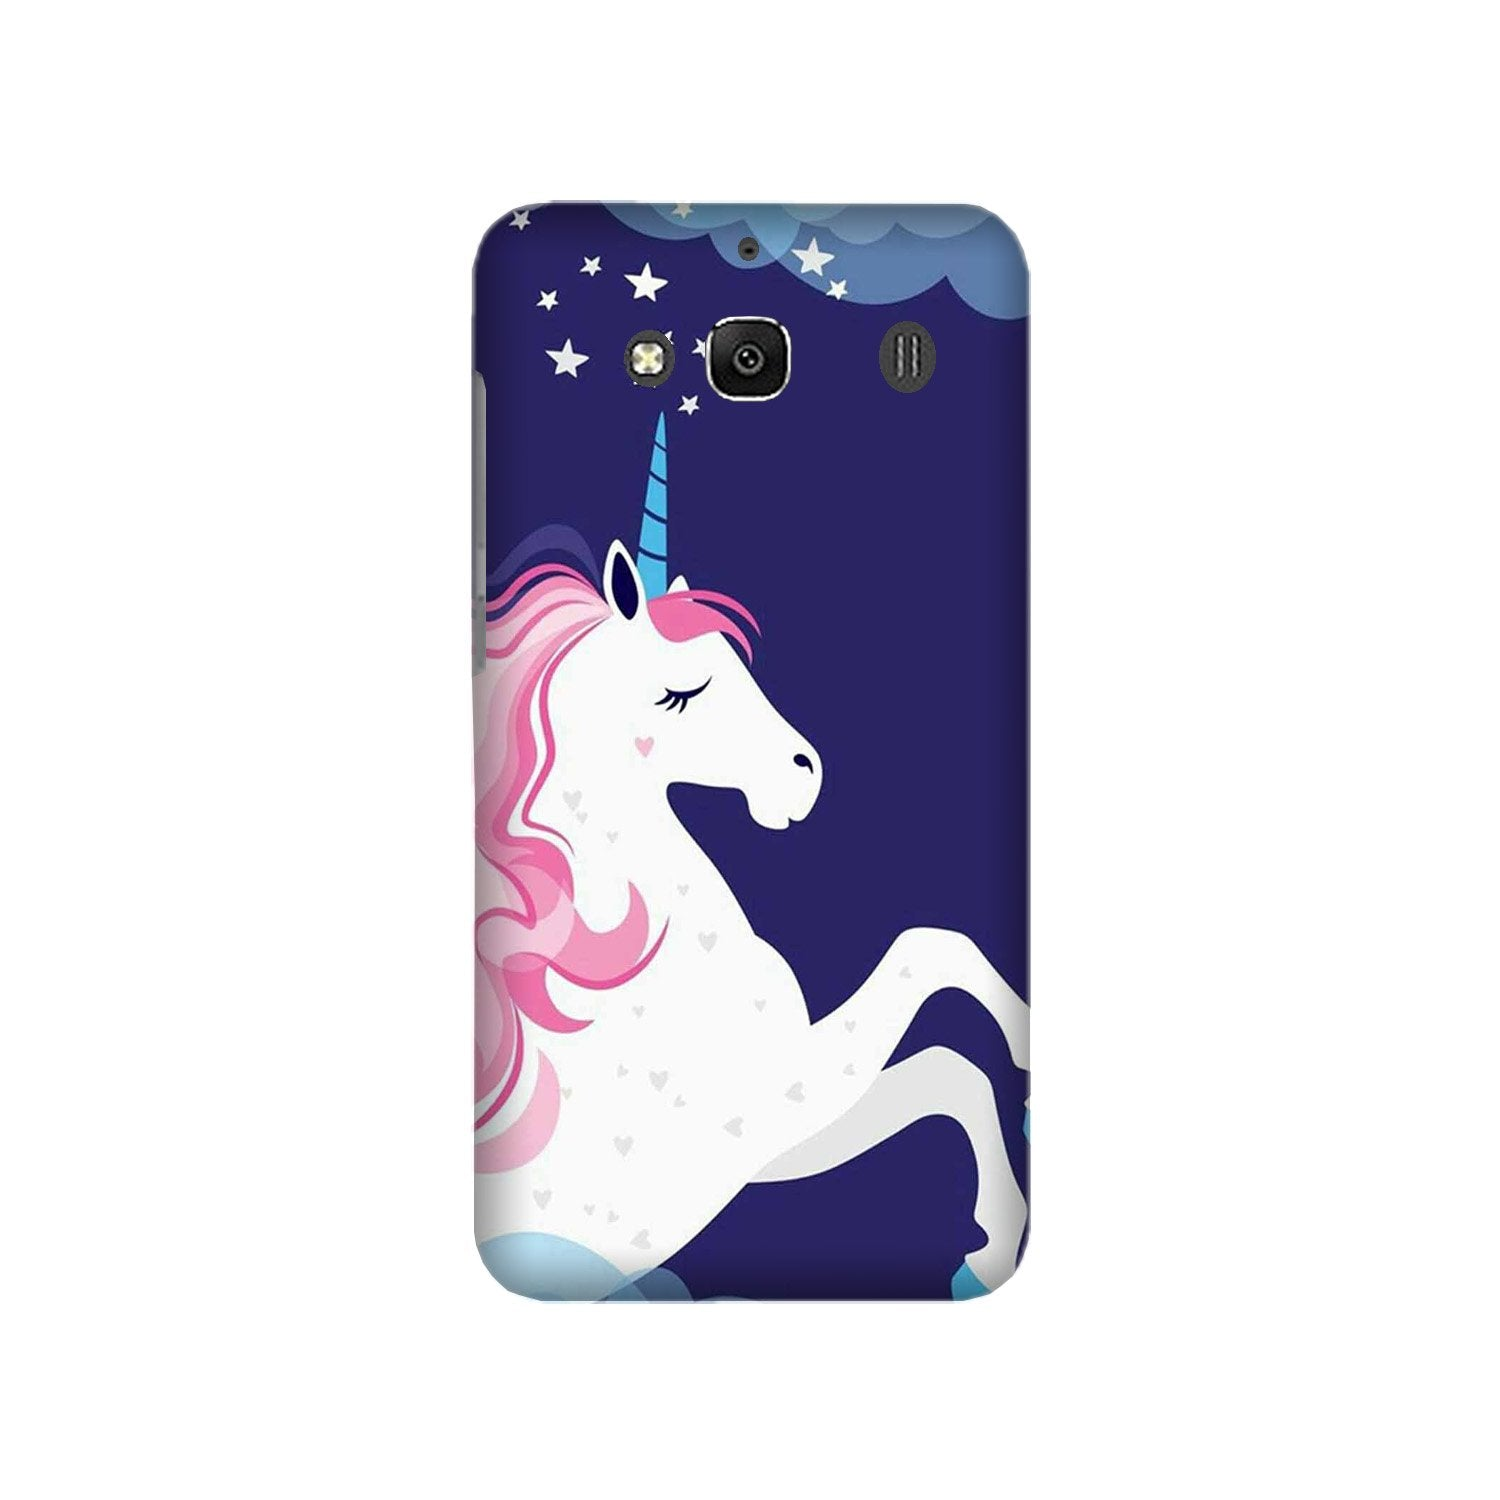 Unicorn Mobile Back Case for Redmi 2 Prime  (Design - 365)